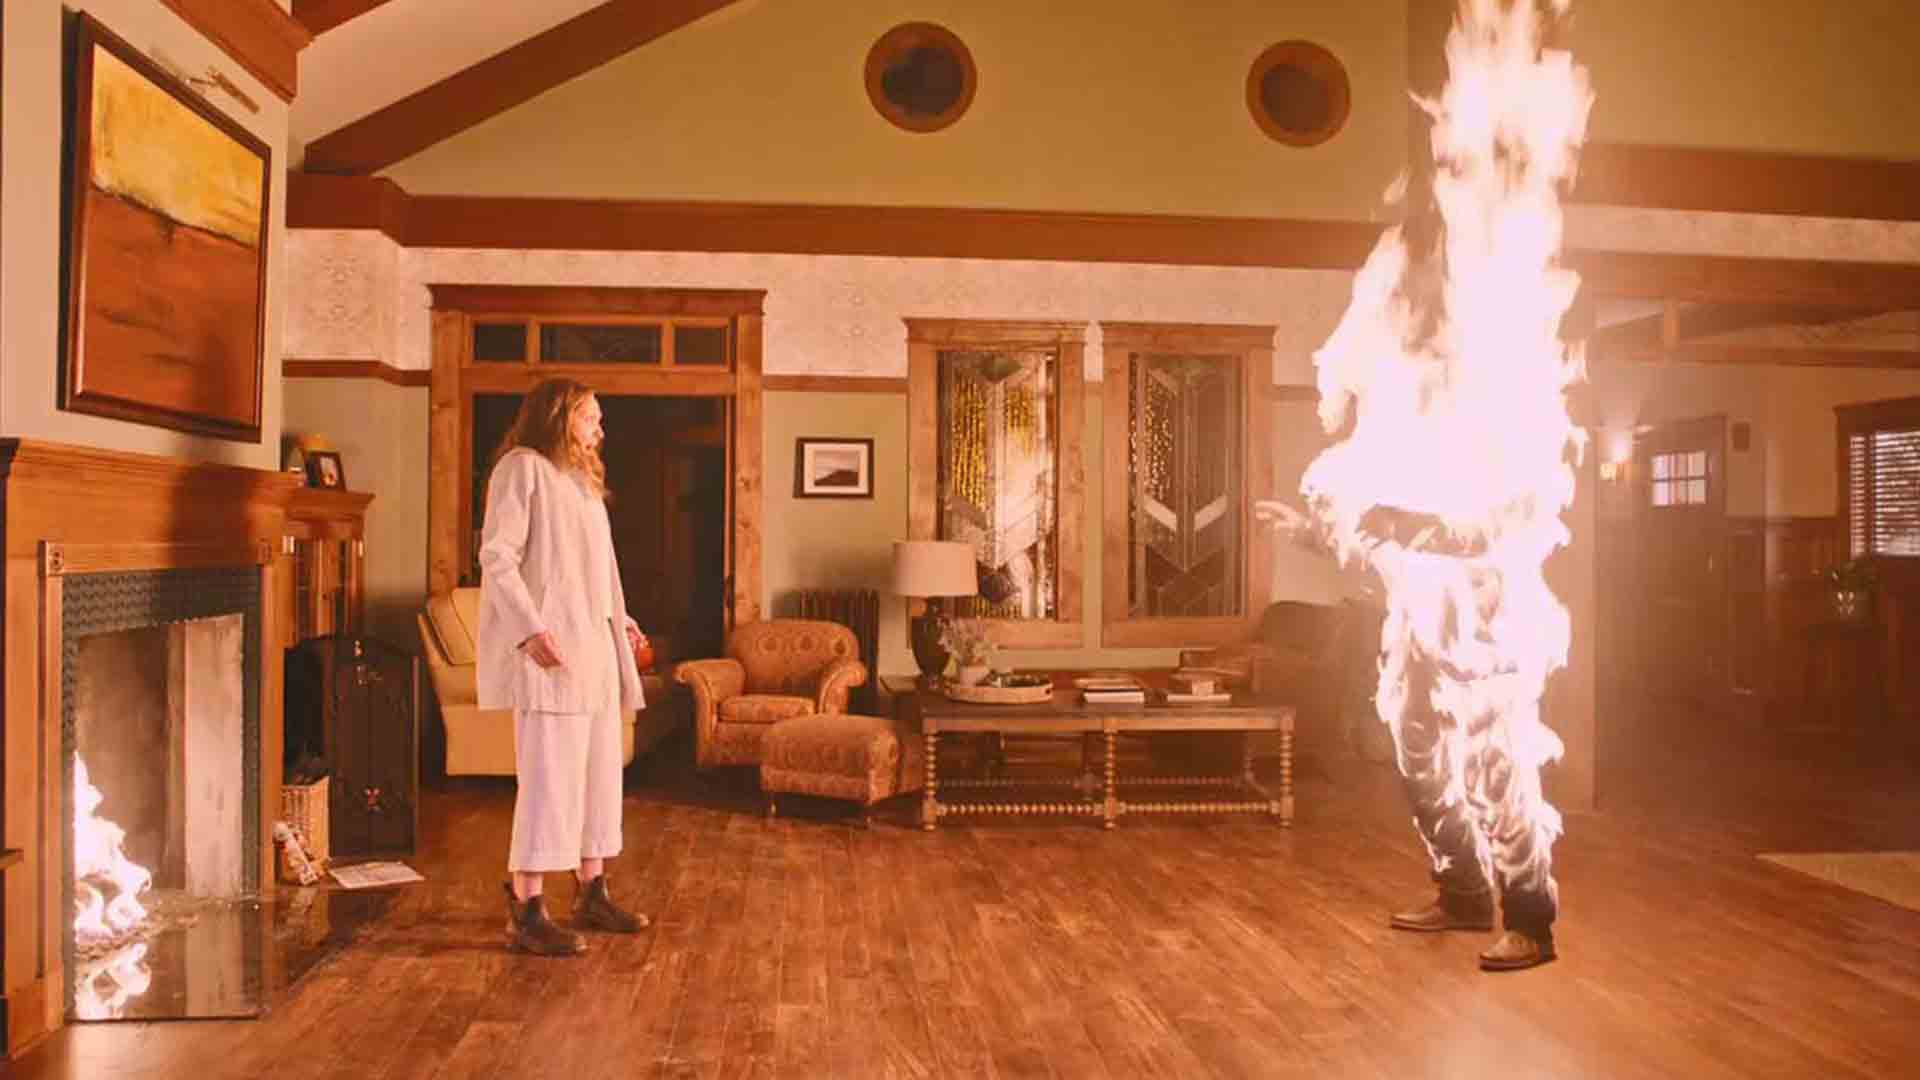 Tony Colt with a man on fire in the movie Hereditary